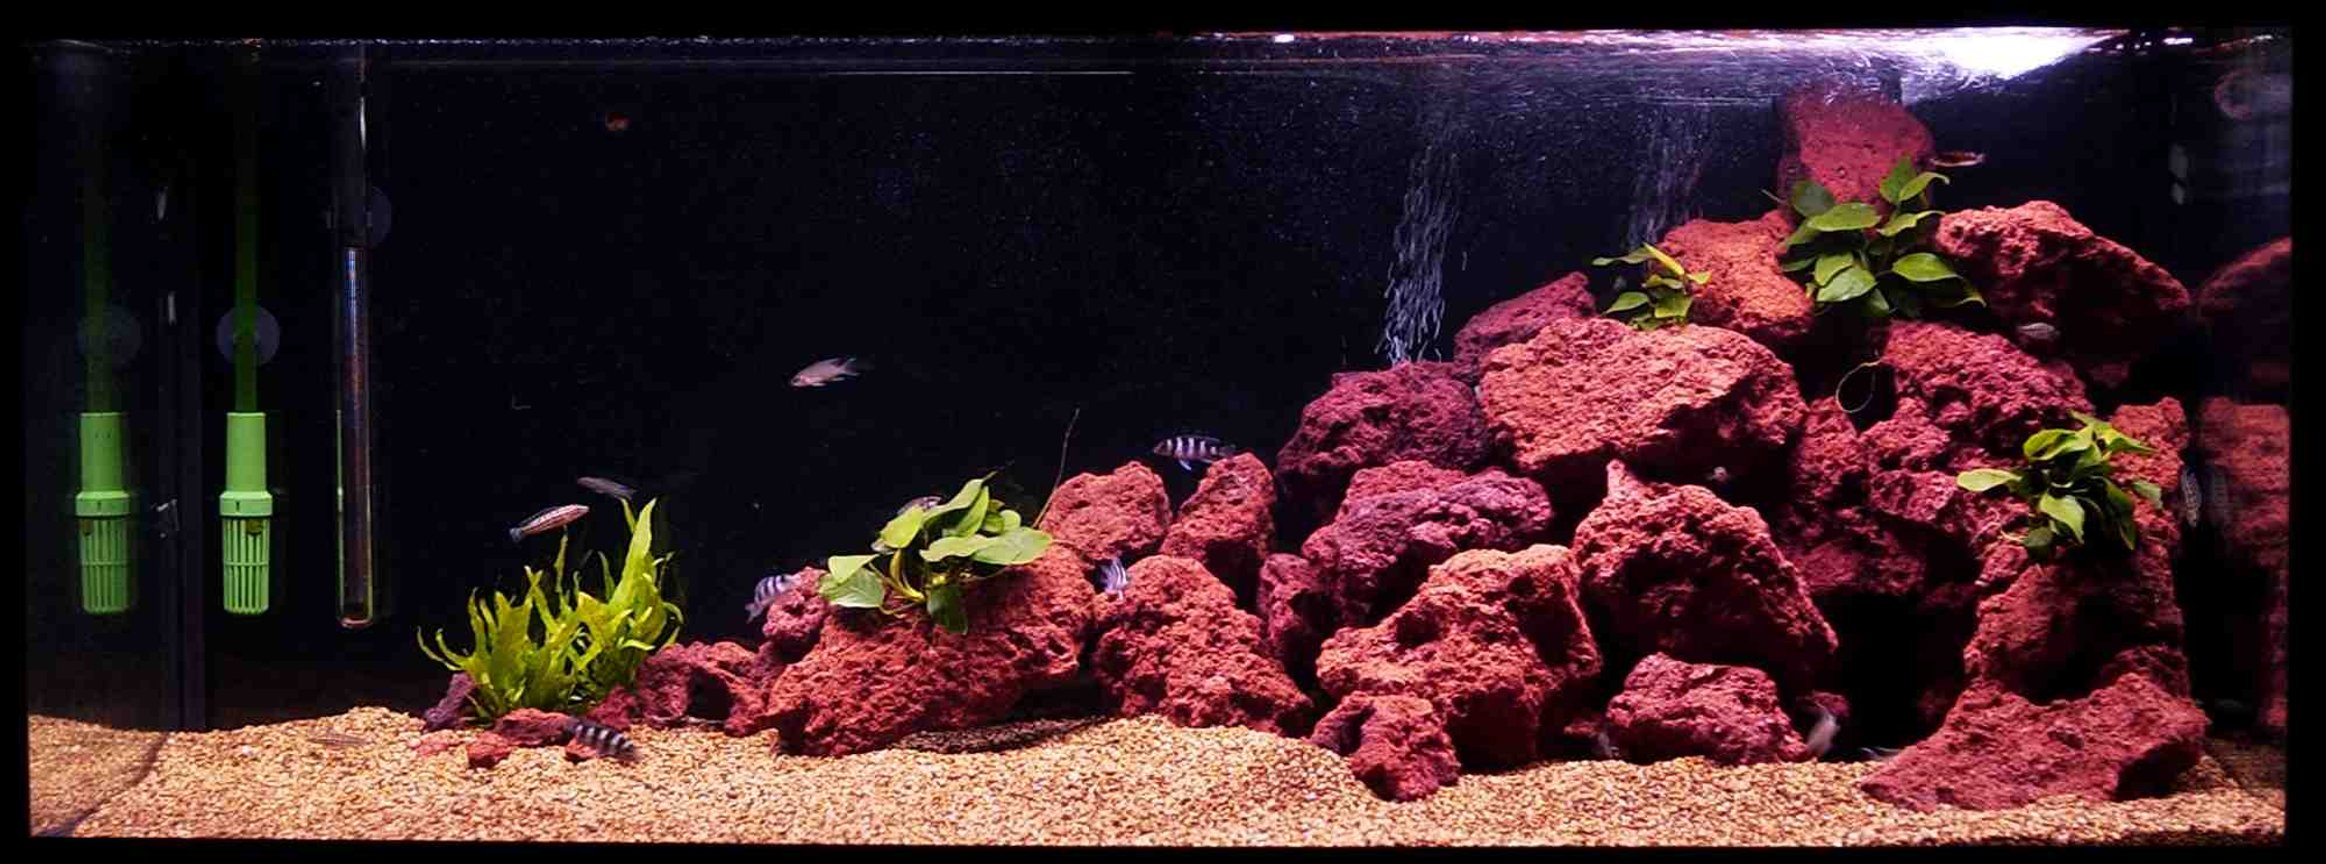 72 gallons freshwater fish tank (mostly fish and non-living decorations) - This is my Tang tank... poor picture will upload a better one soon... :)